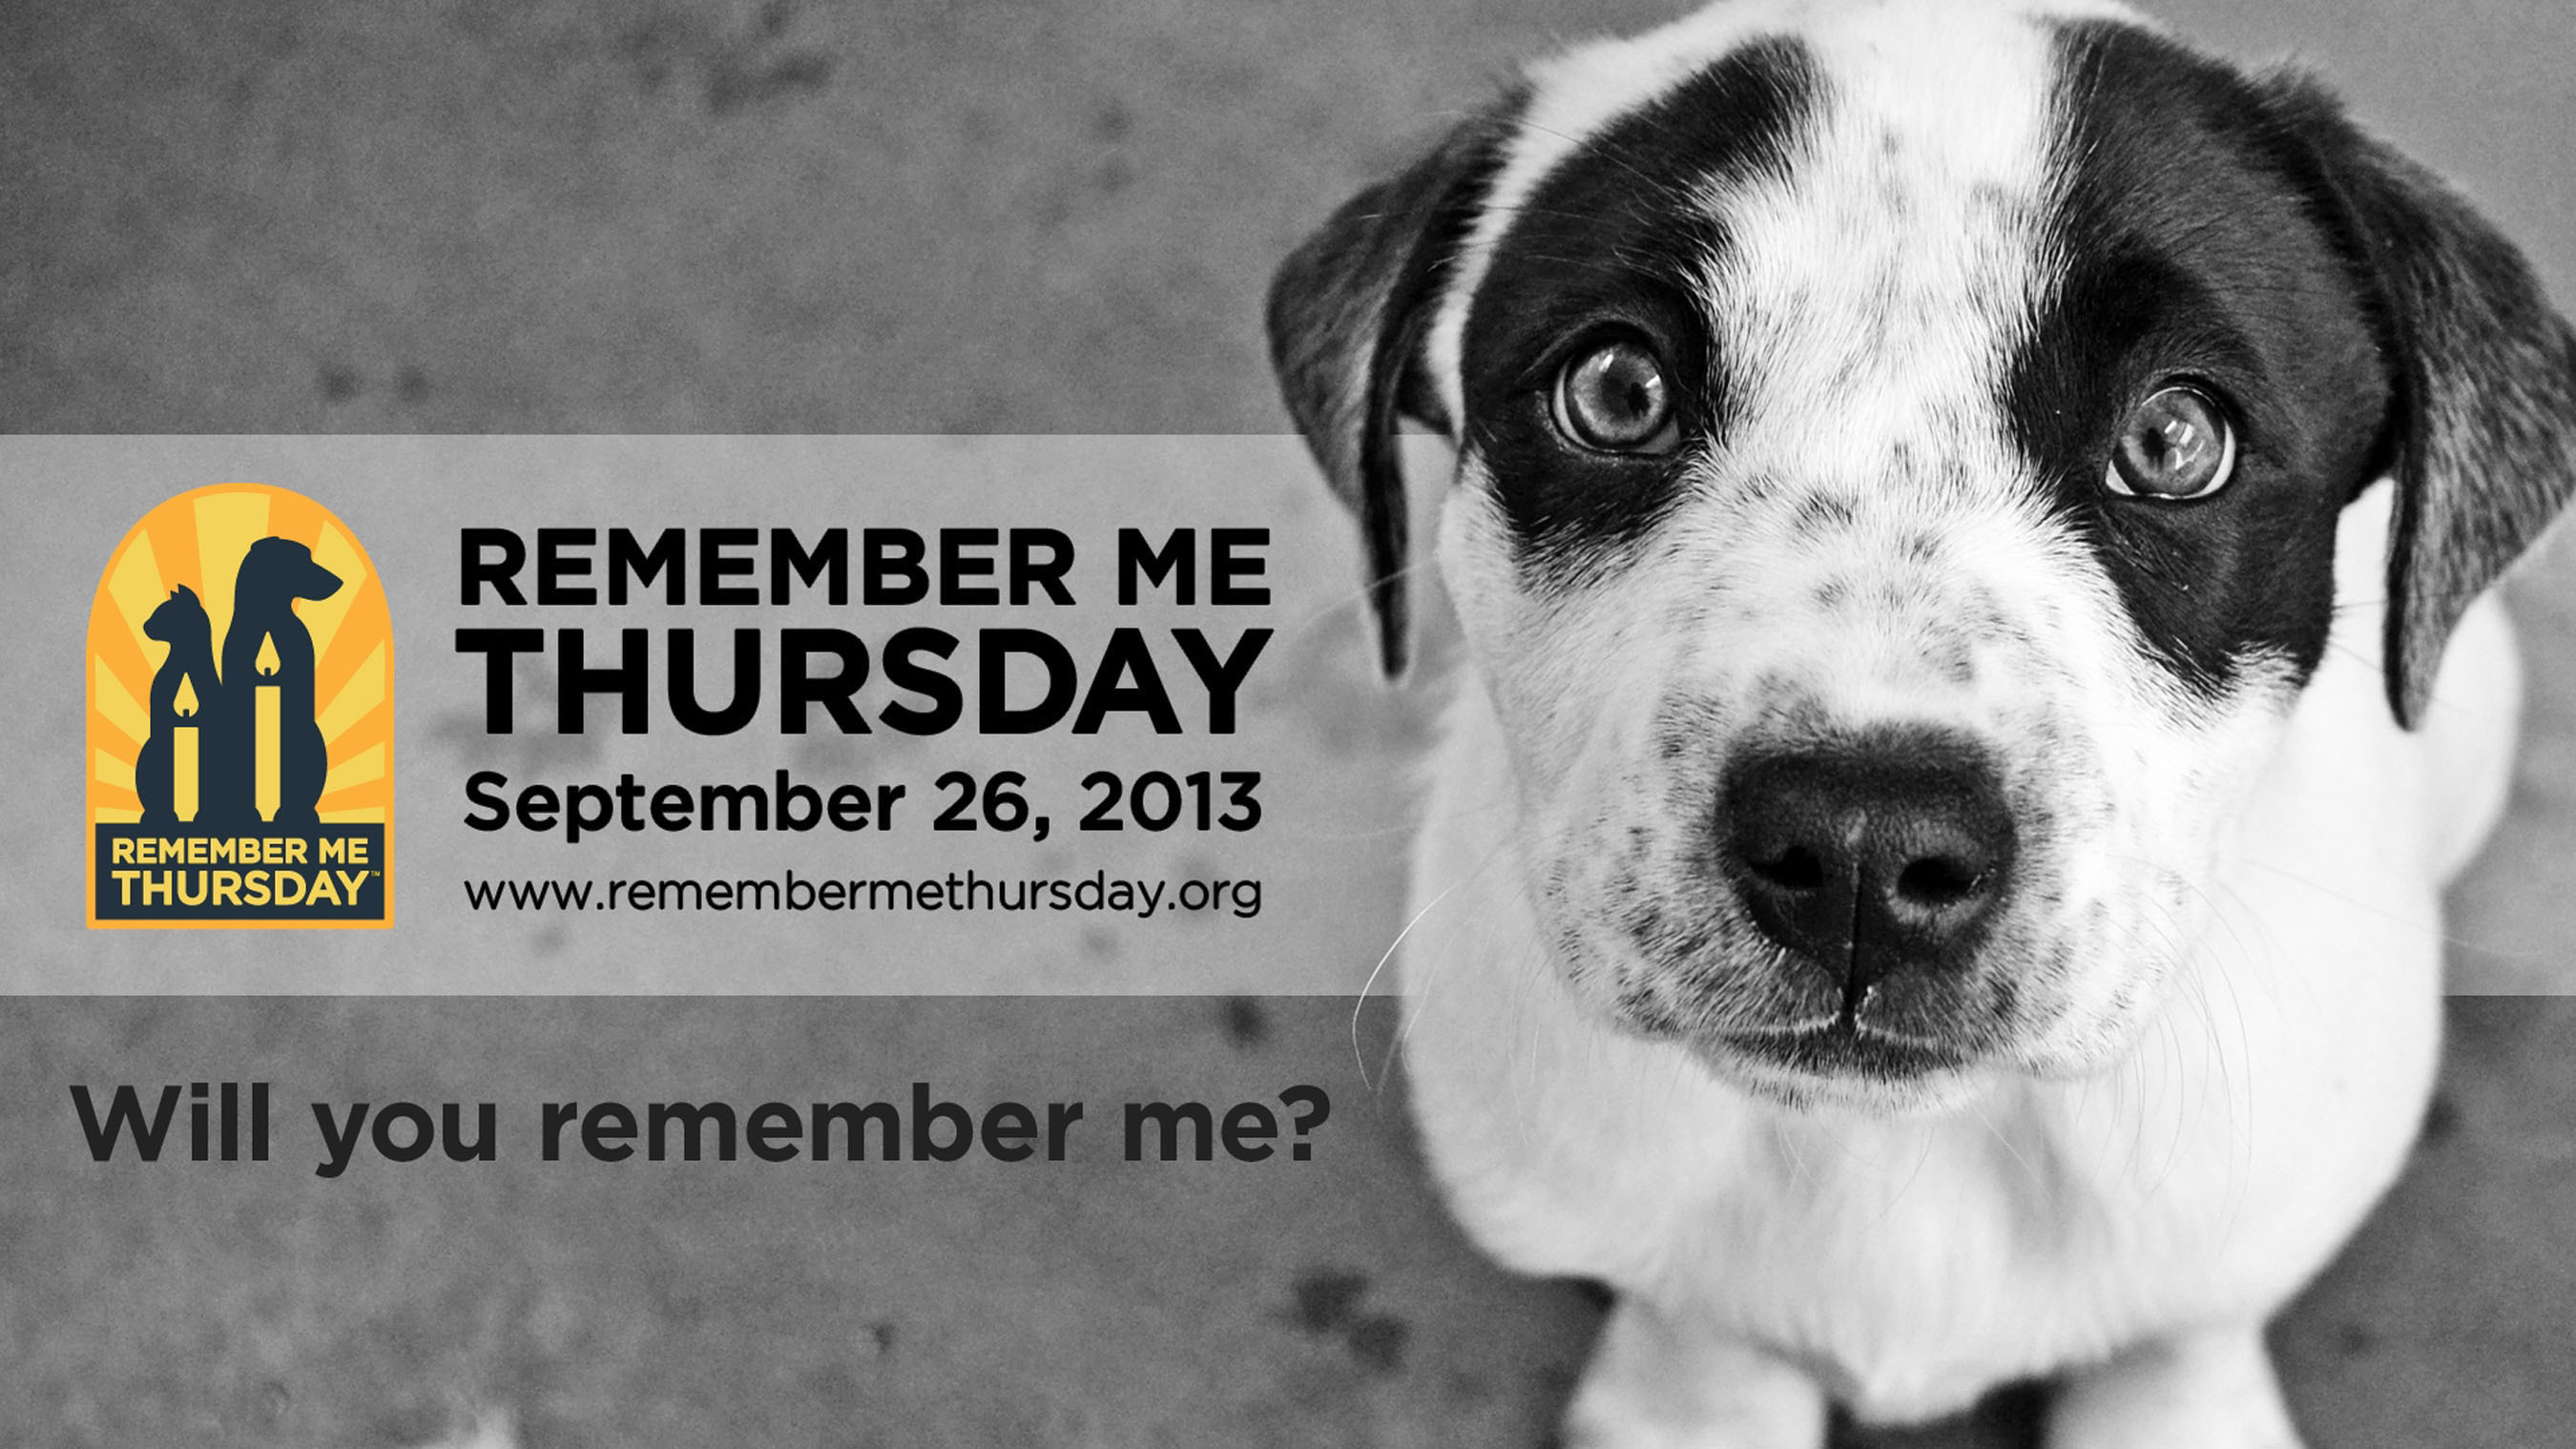 Helen Woodward Animal Center and animal welfare organizations across the globe invite you to honor the ones who lost their lives by shining a light on orphan pets waiting for their forever homes. (PRNewsFoto/Helen Woodward Animal Center) (PRNewsFoto/HELEN WOODWARD ANIMAL CENTER)